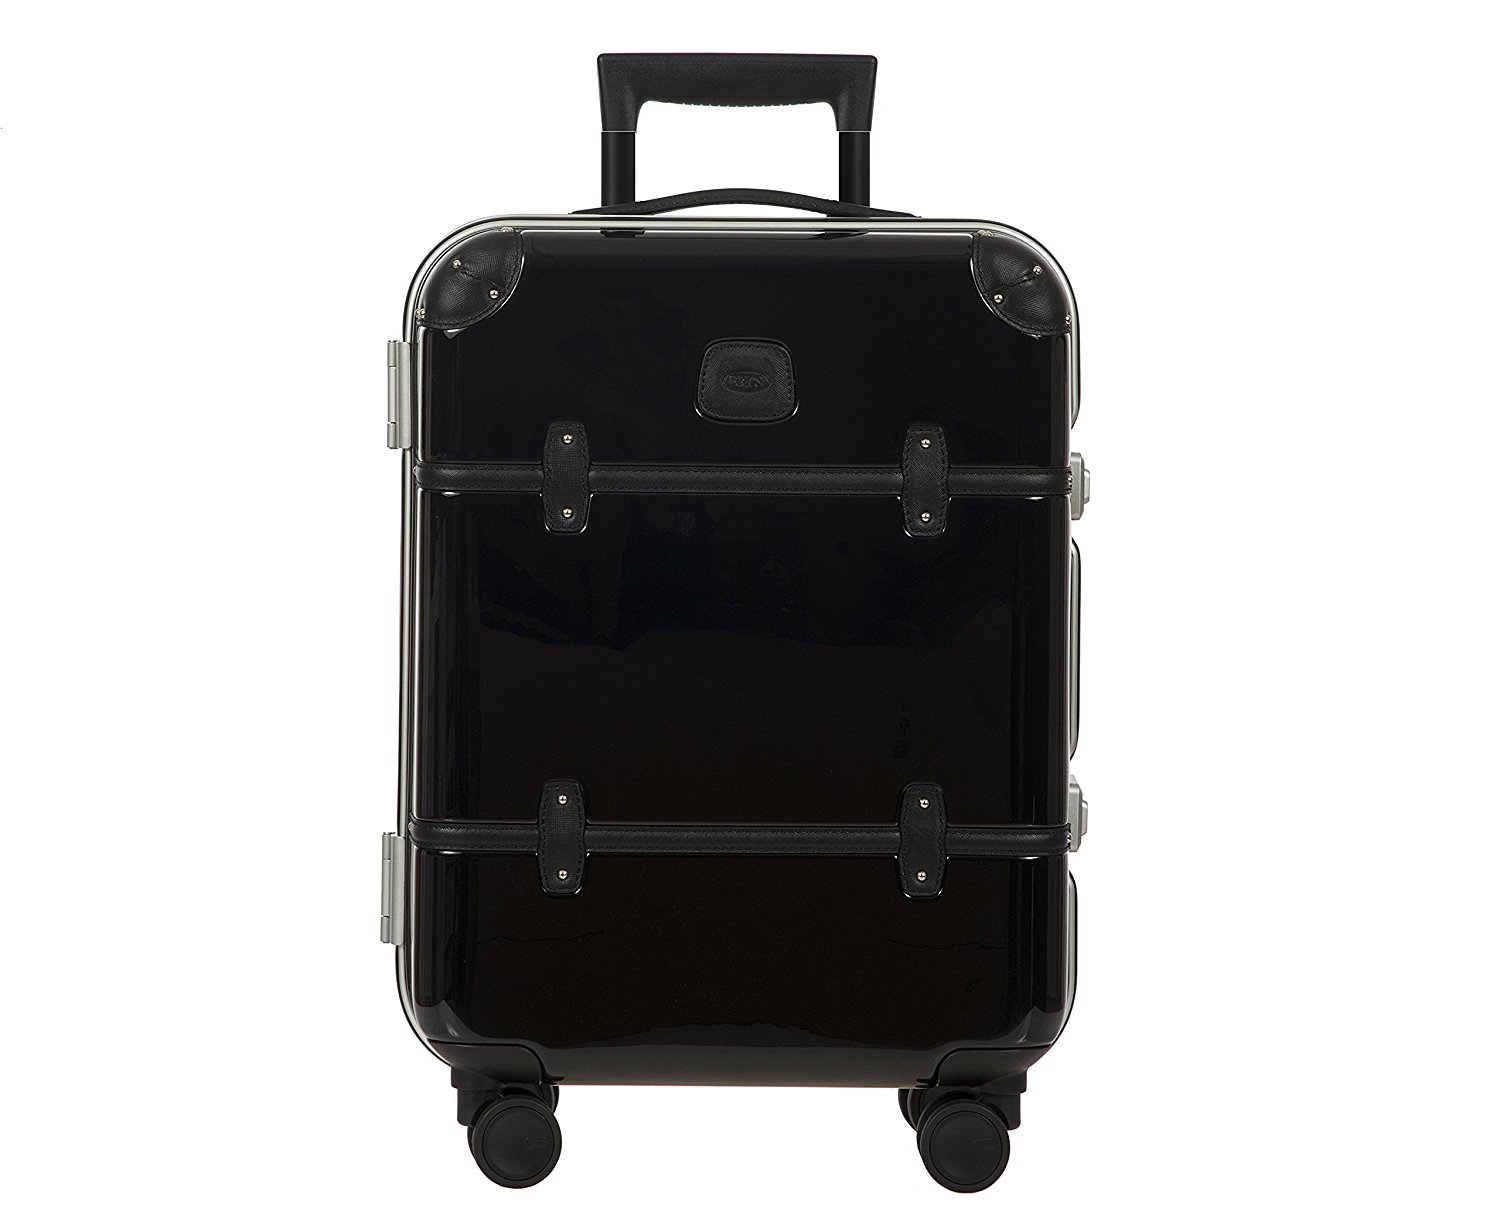 Bellagio METALLO 2.0 International 53,3 cm Carry On Spinner Trunk, Schwarz glänzend (schwarz) - BBG28501.901